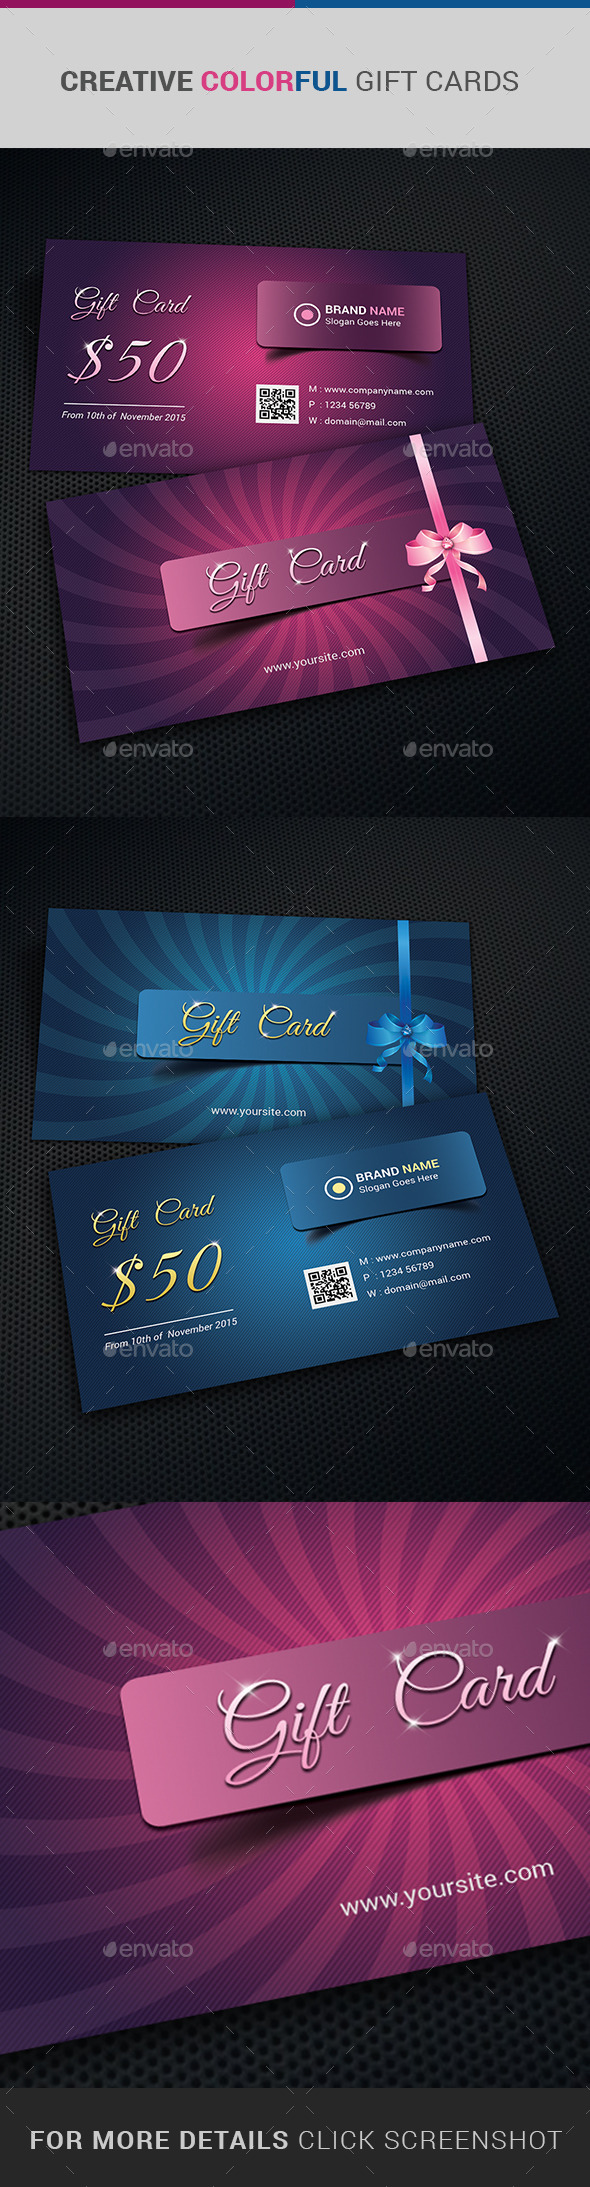 Gift Card Graphics Designs Templates From Graphicriver